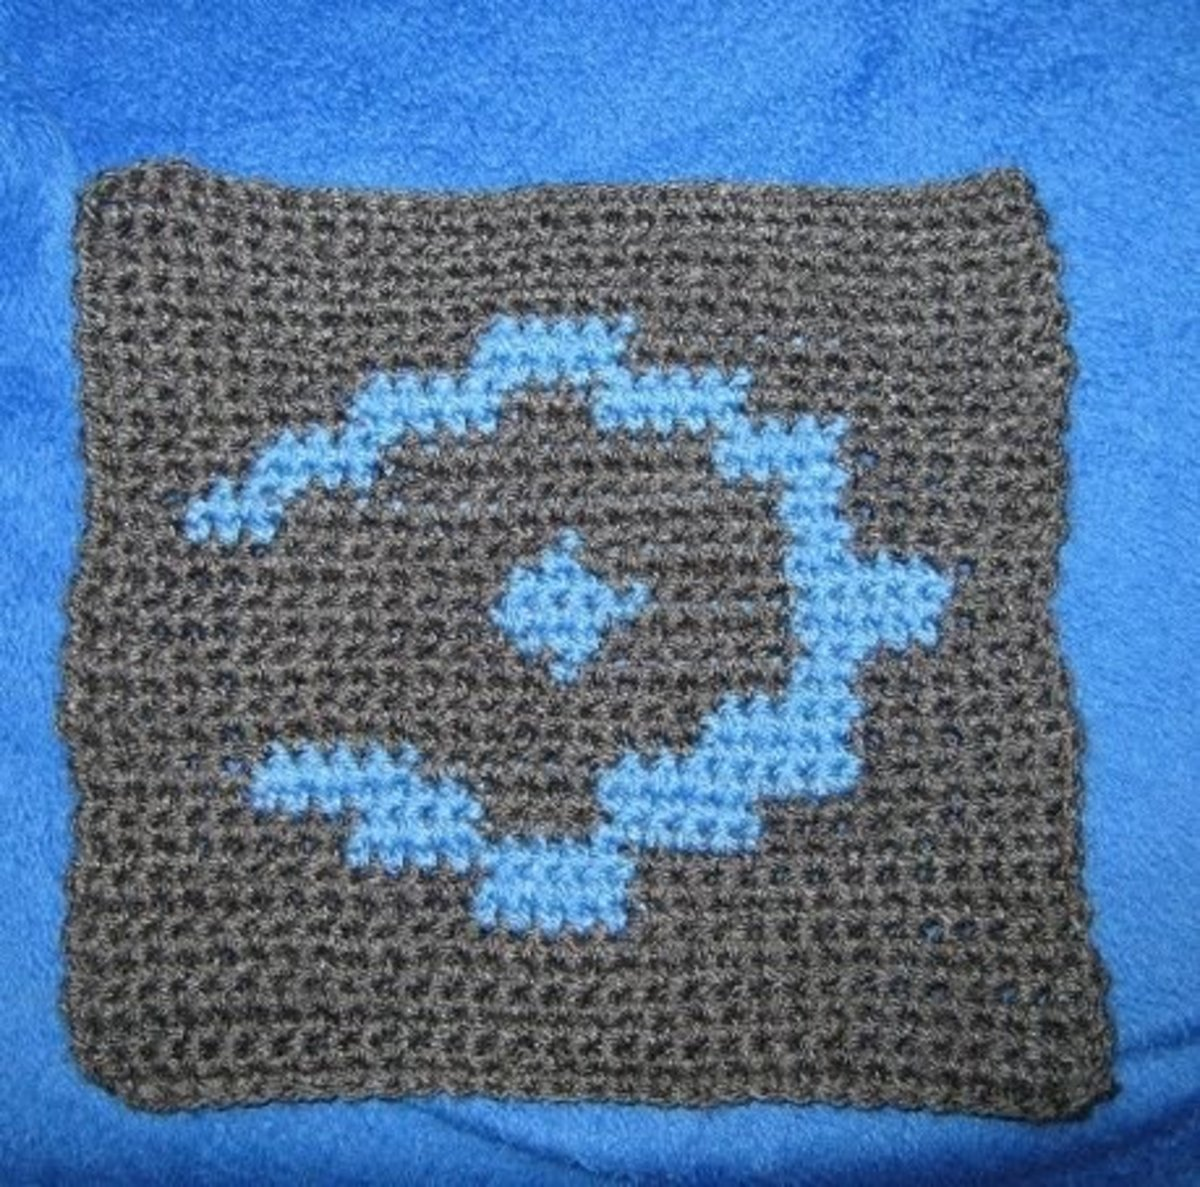 I am making a gamer's afghan (or gamerghan) for my son and this is a Halo emblem, the pattern for which I found on Ravelry